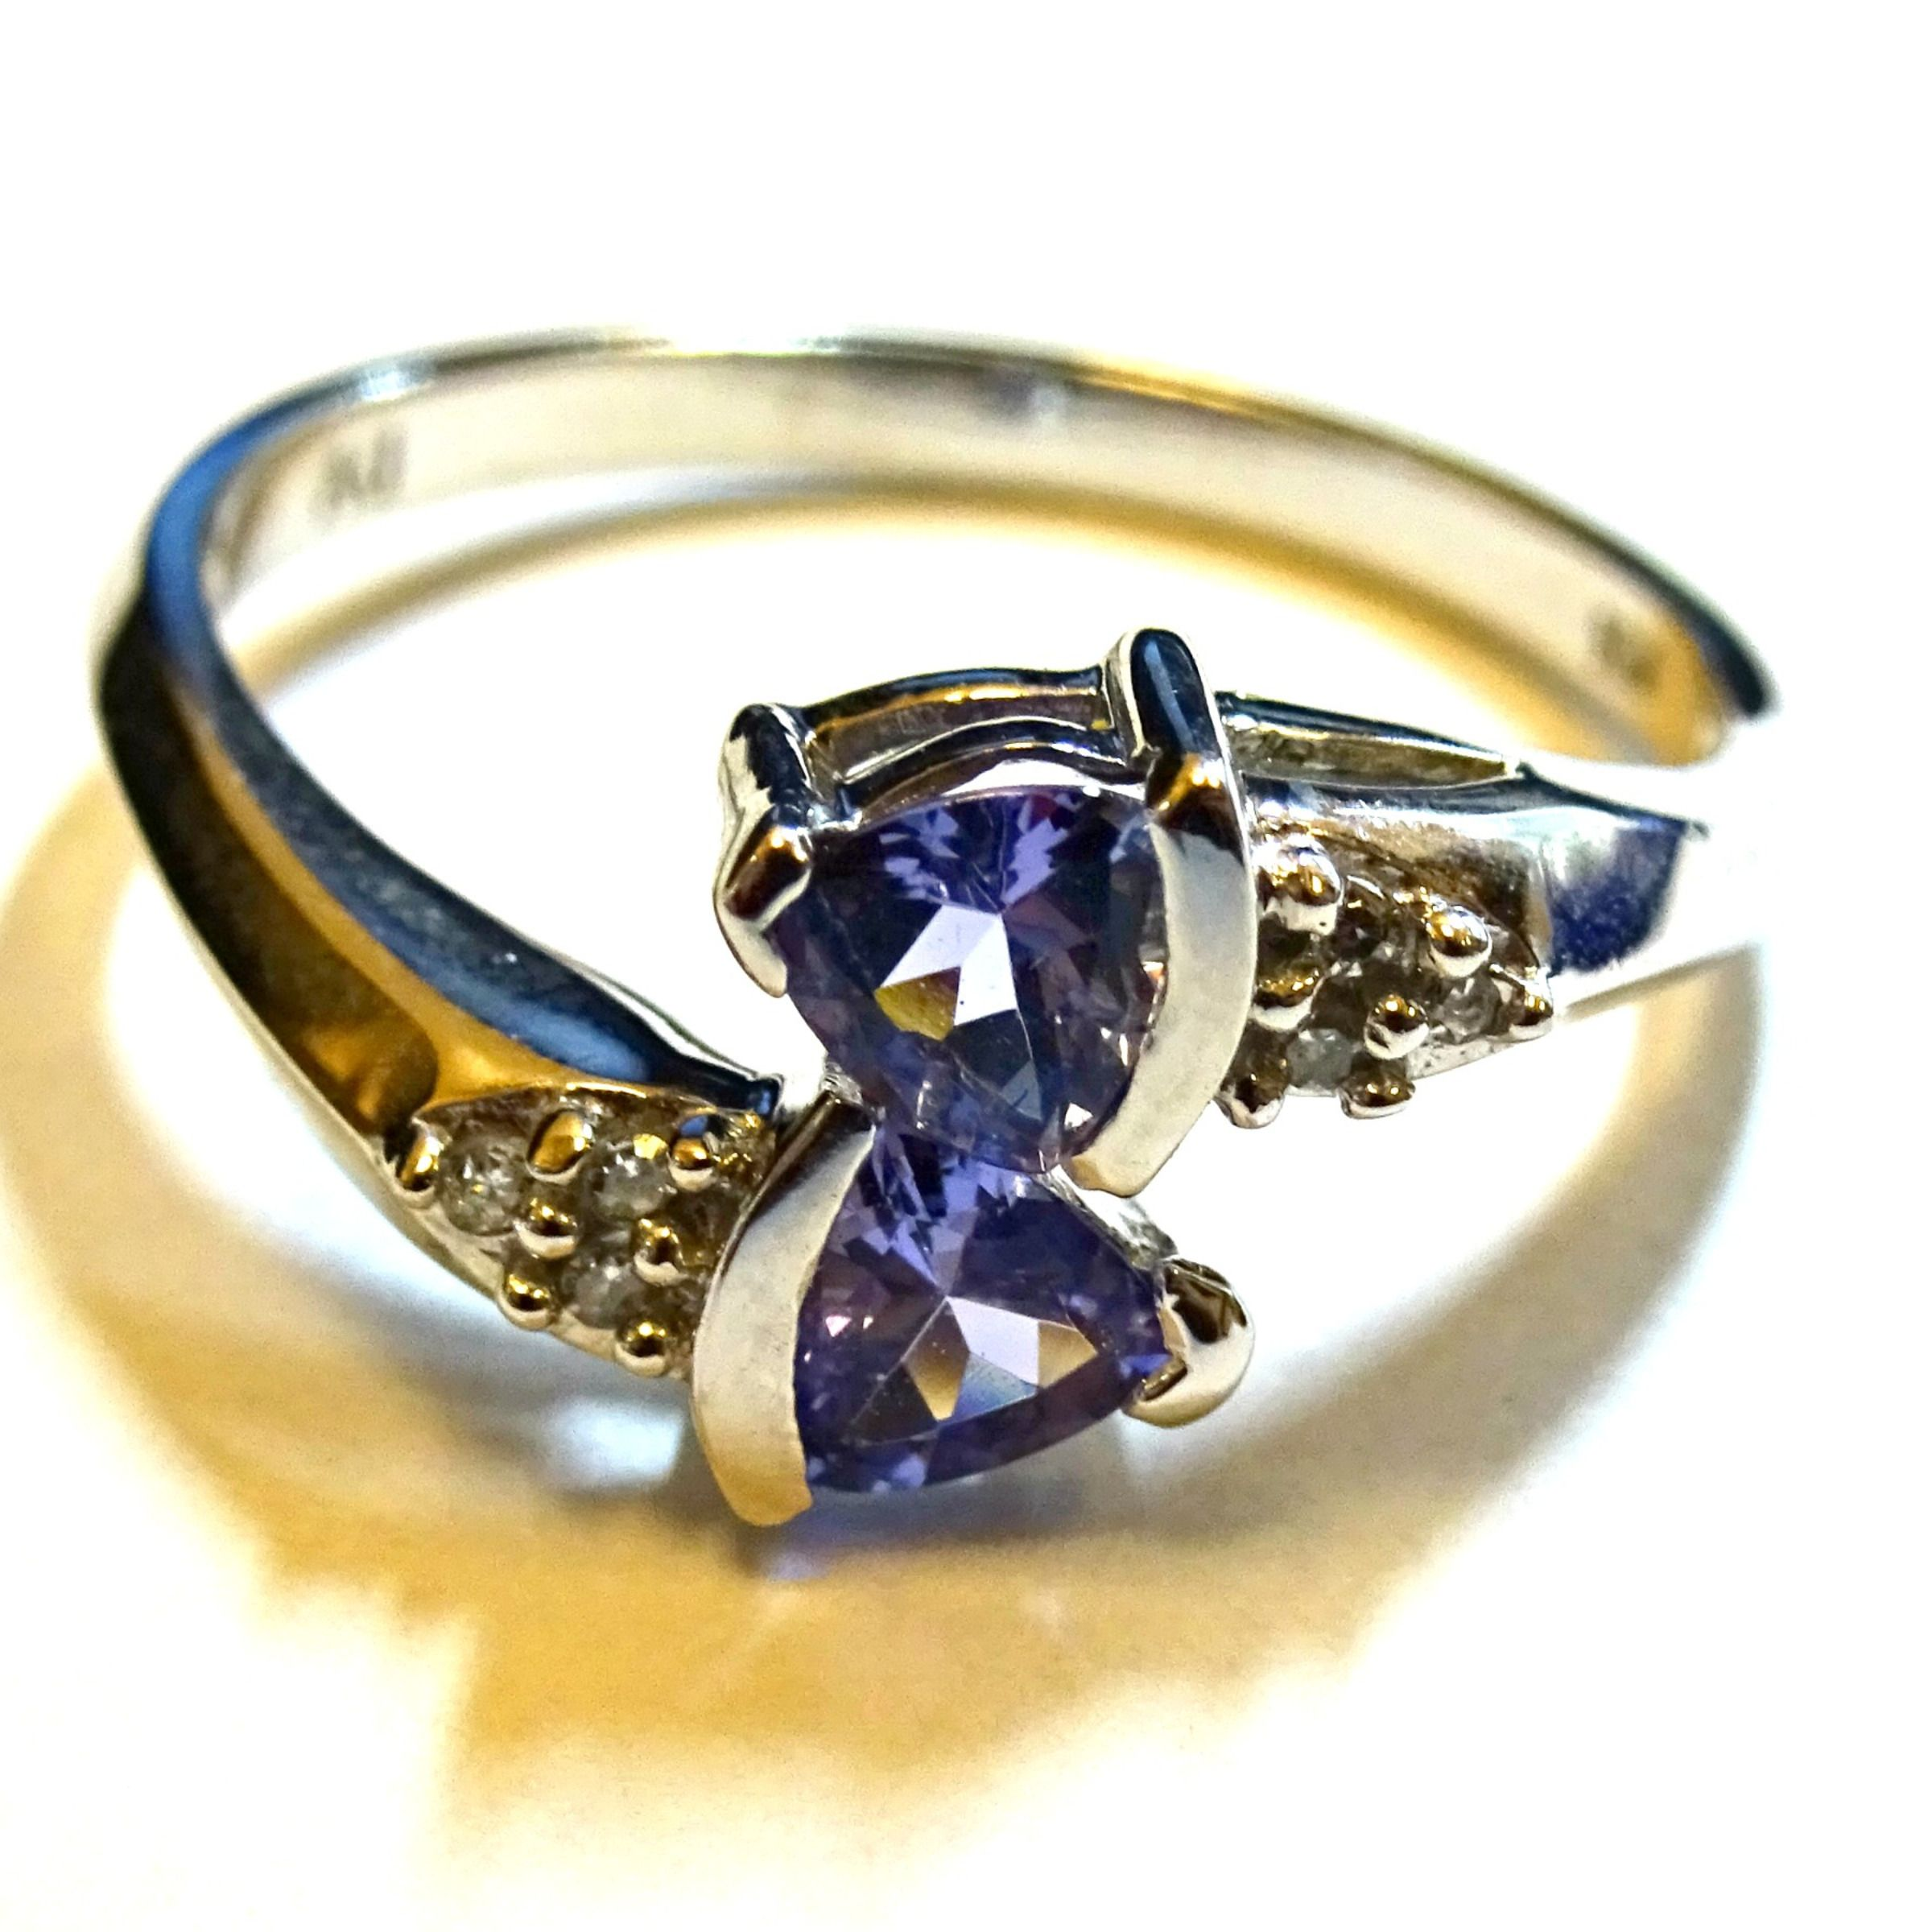 10k White Gold Blue Tanzanite Diamond Ring Size 7 Ebay Tanzanite Diamond Ring Tanzanite Diamond 10k Gold Ring